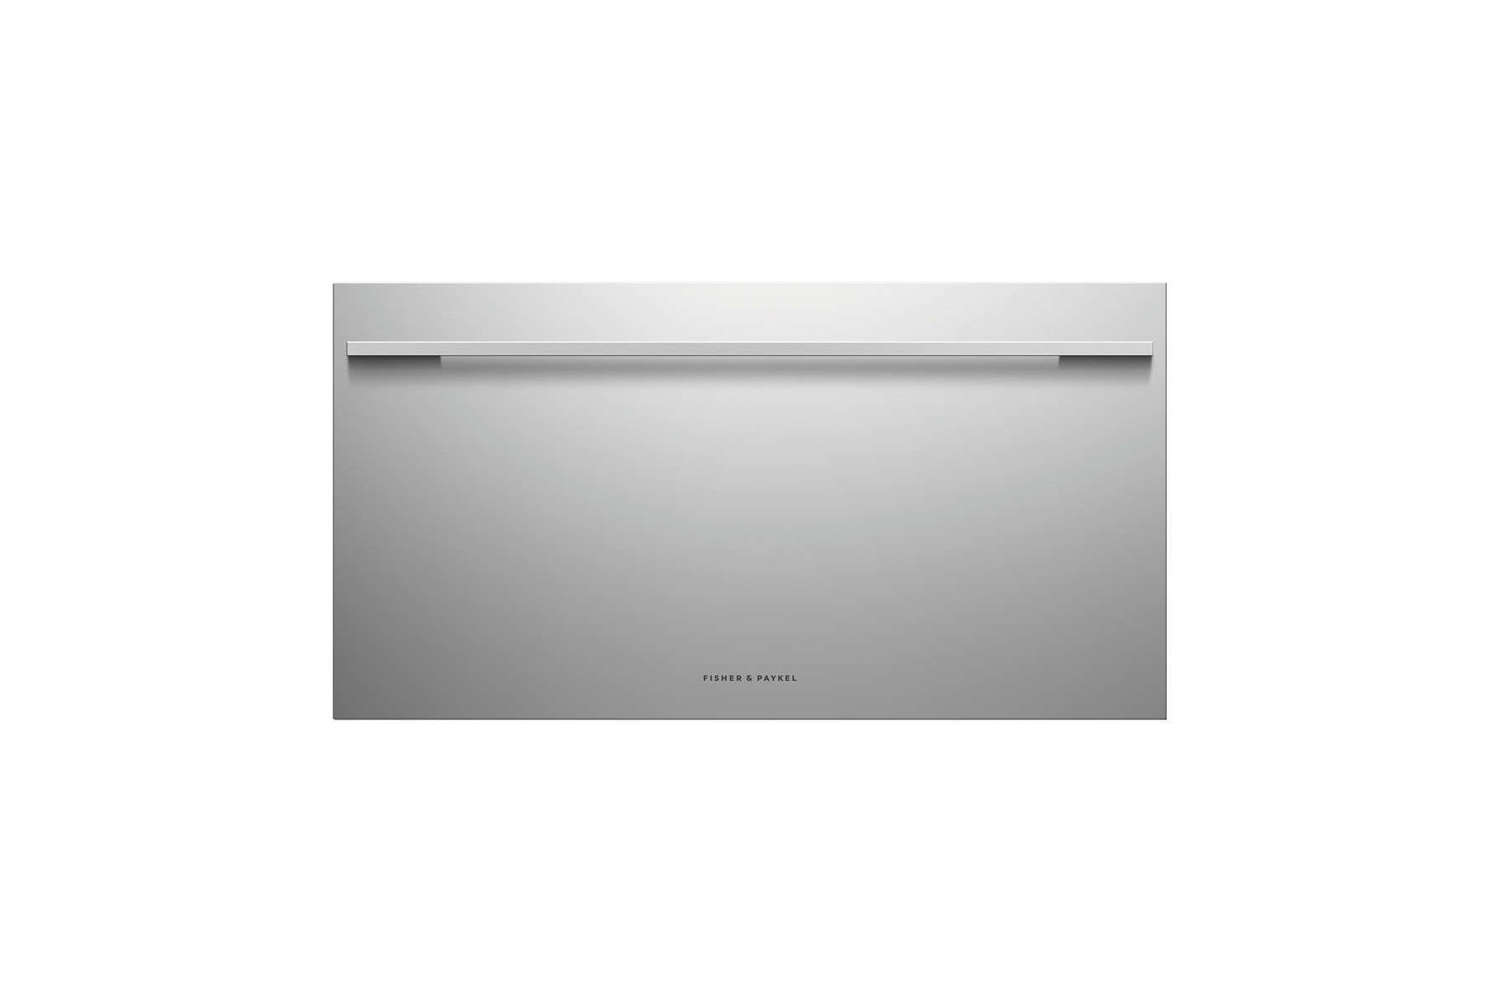 The Fisher & Paykel 34 Inch Built-In Single Drawer (RB36SMKIWNloading=